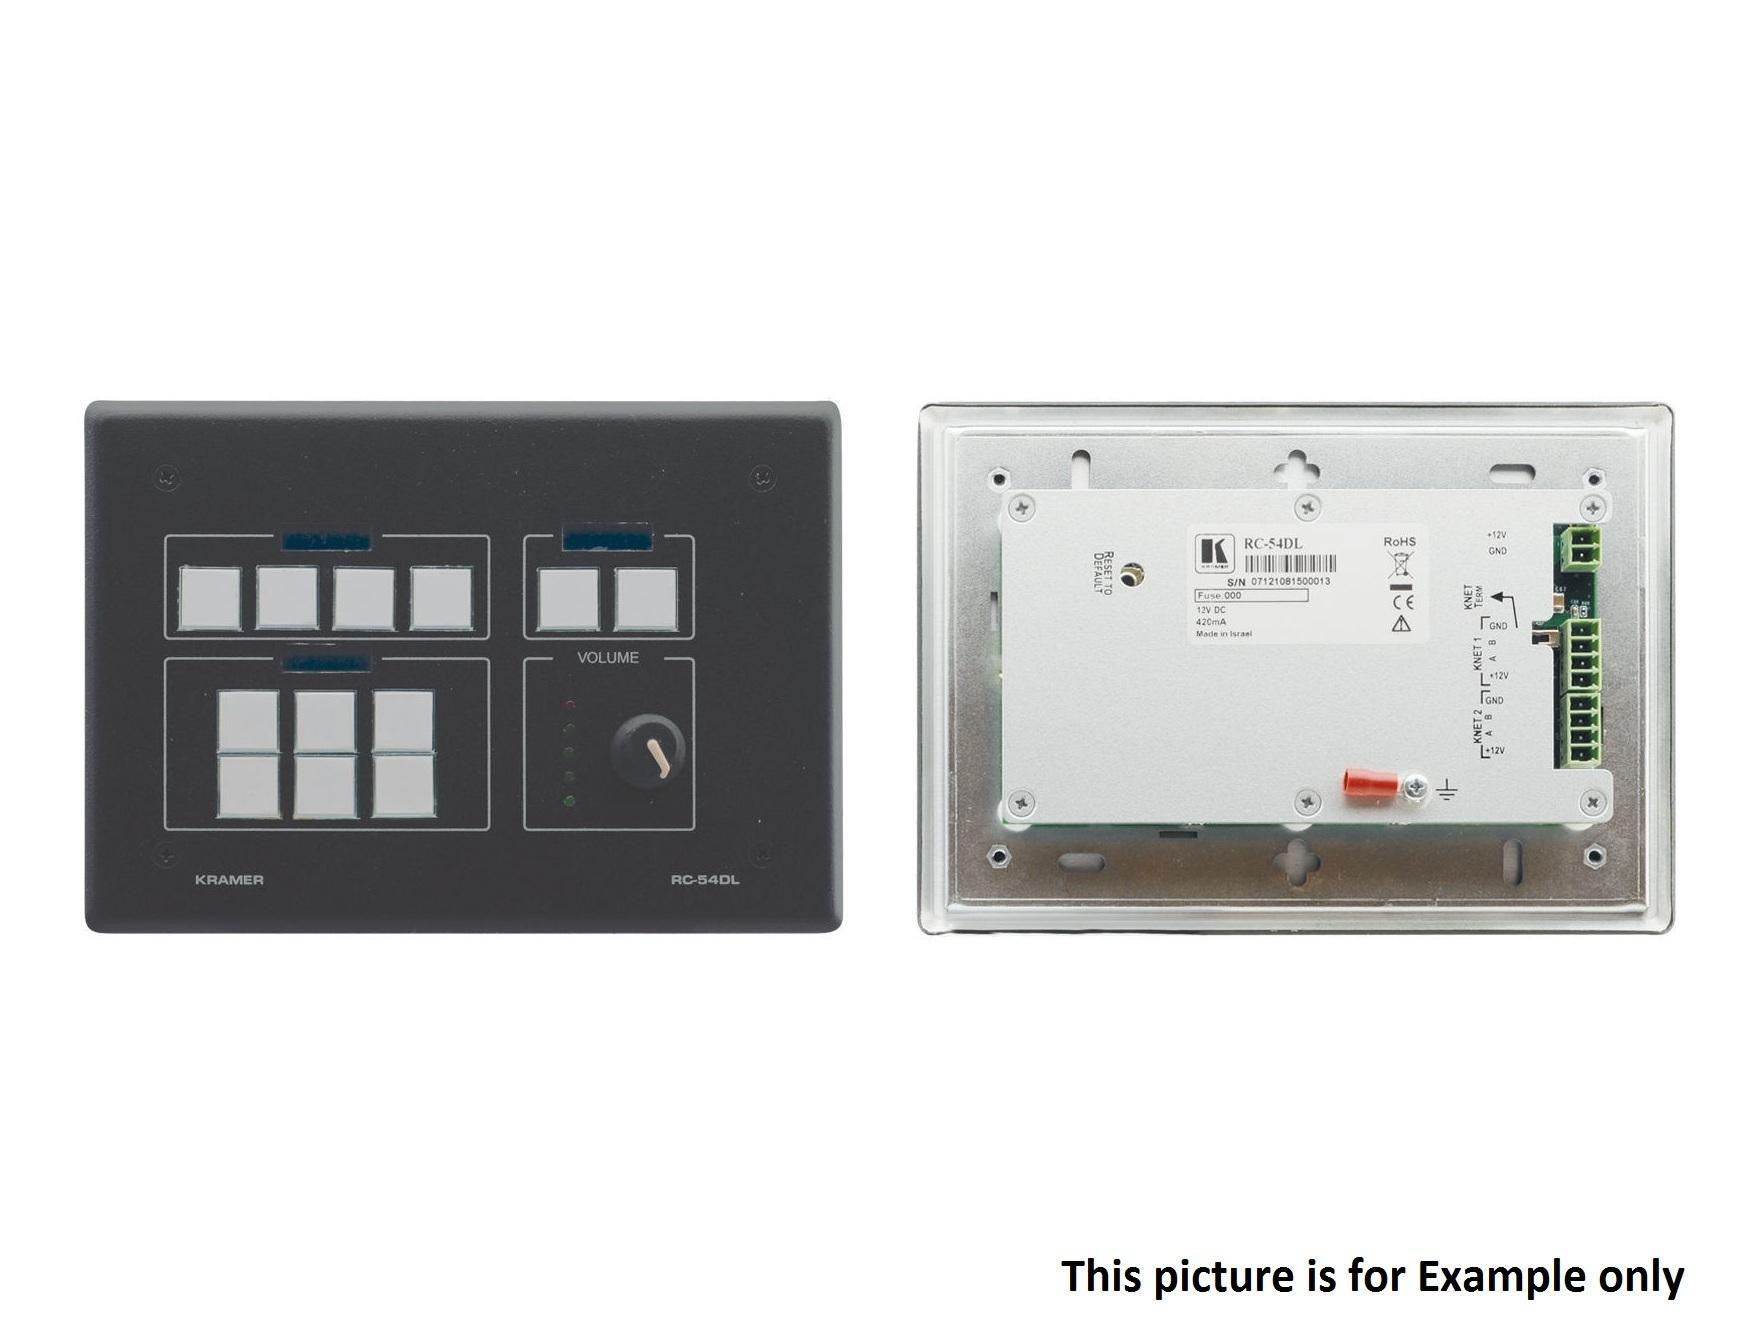 RC-54DL(B) 12-Button KNET Auxiliary Control Panel/Black by Kramer